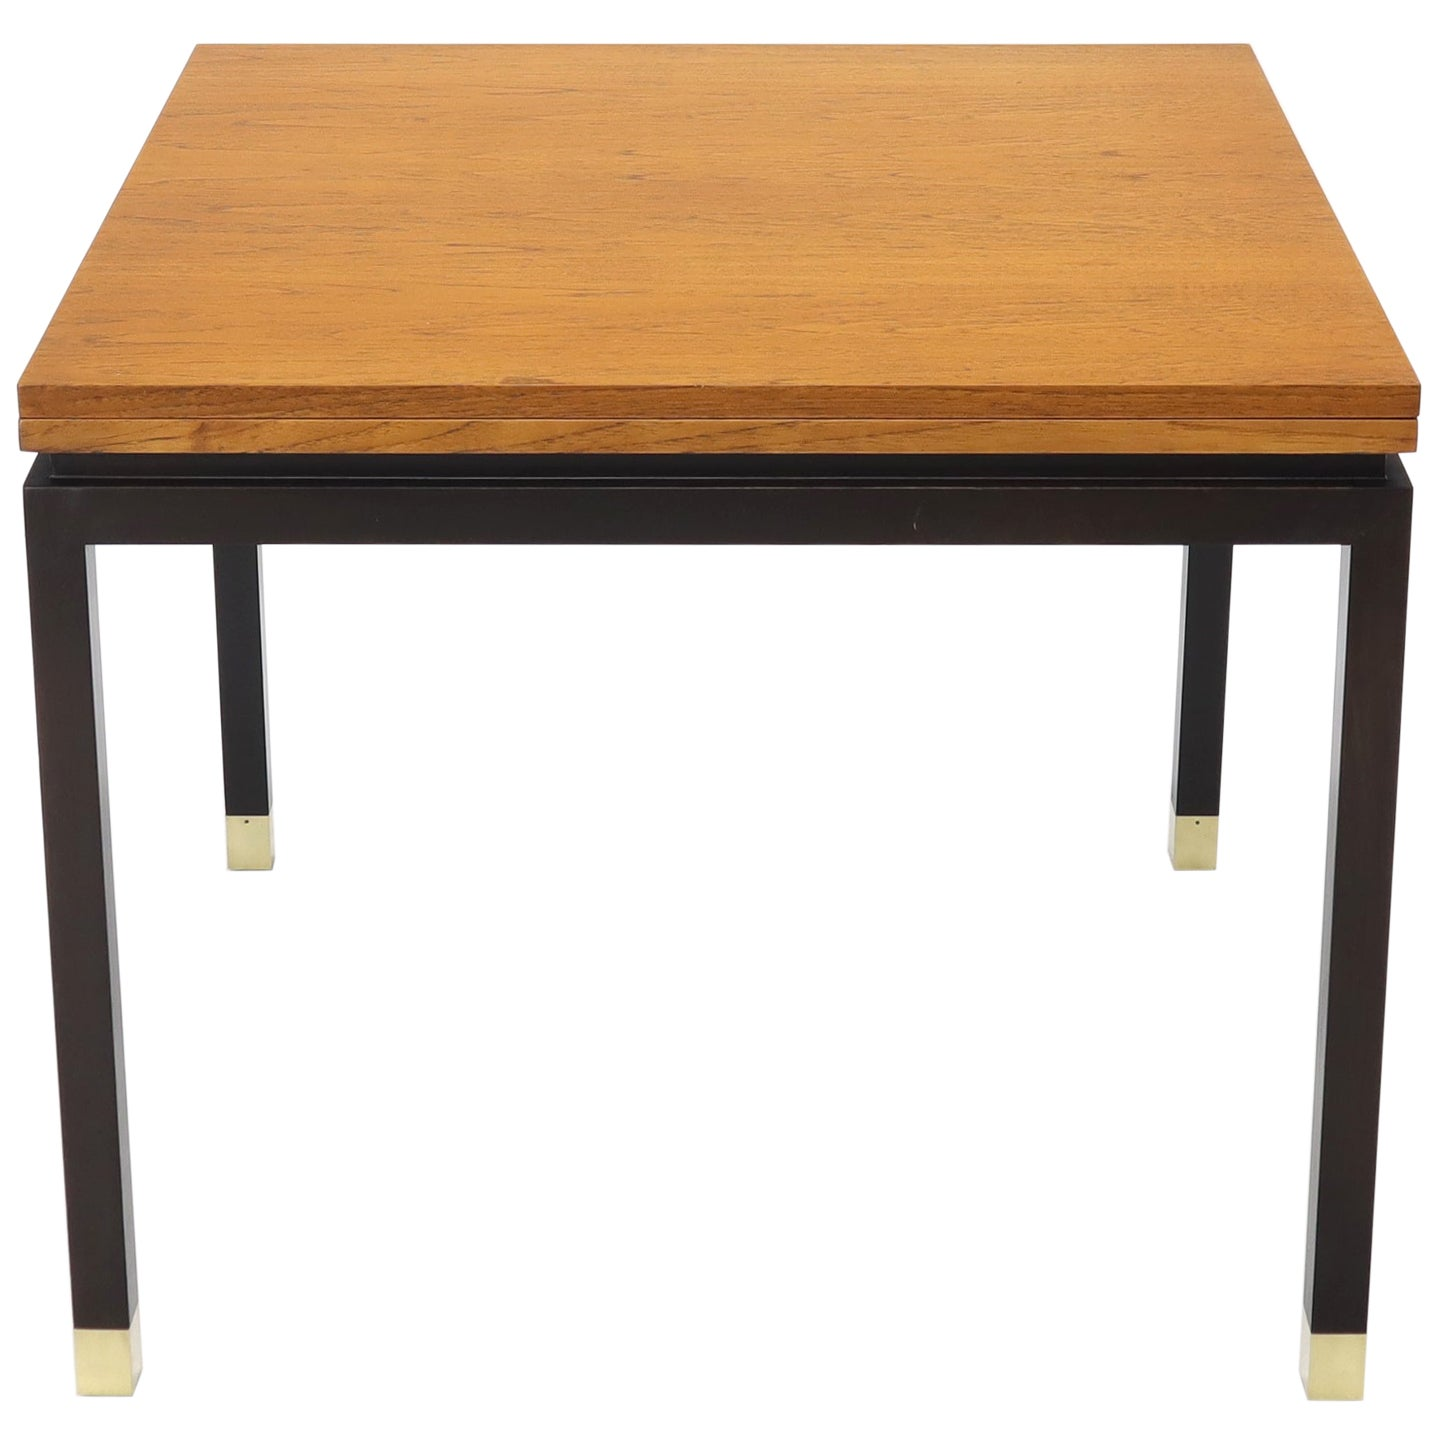 Flip Top Expandable Square Game Table on Parsons Ebonized legs with Brass Tips